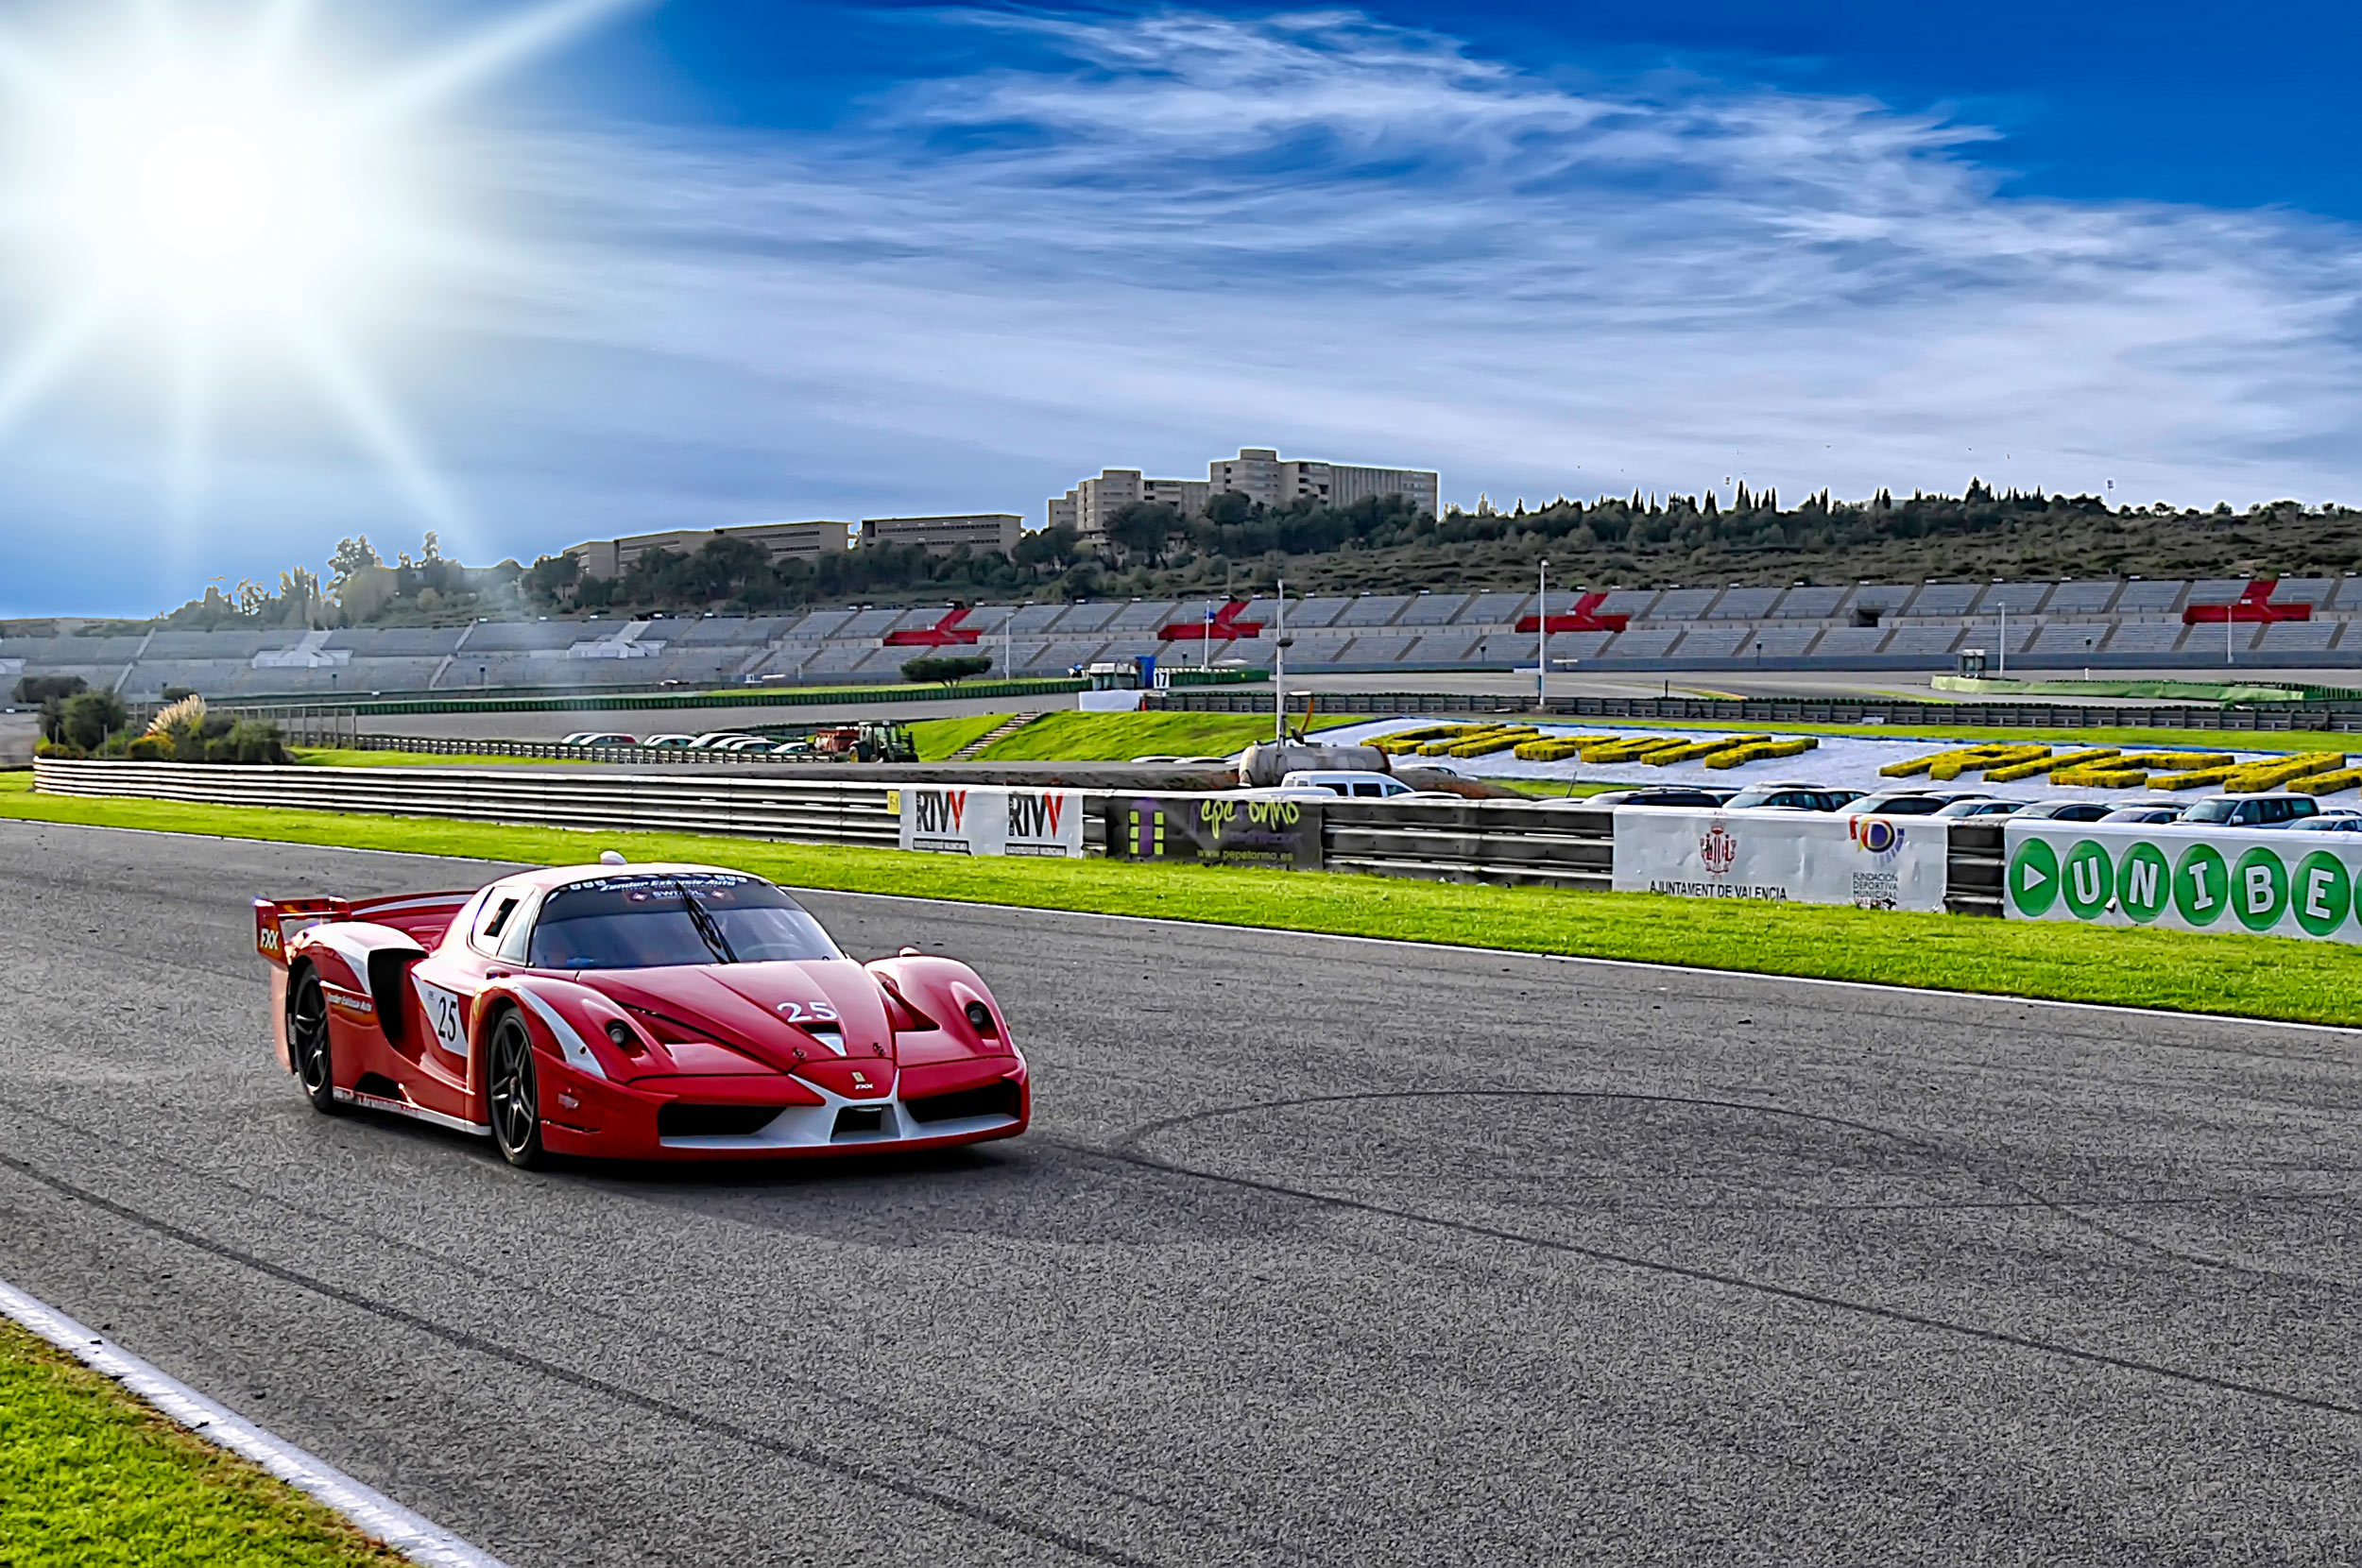 Ferrari on racing track